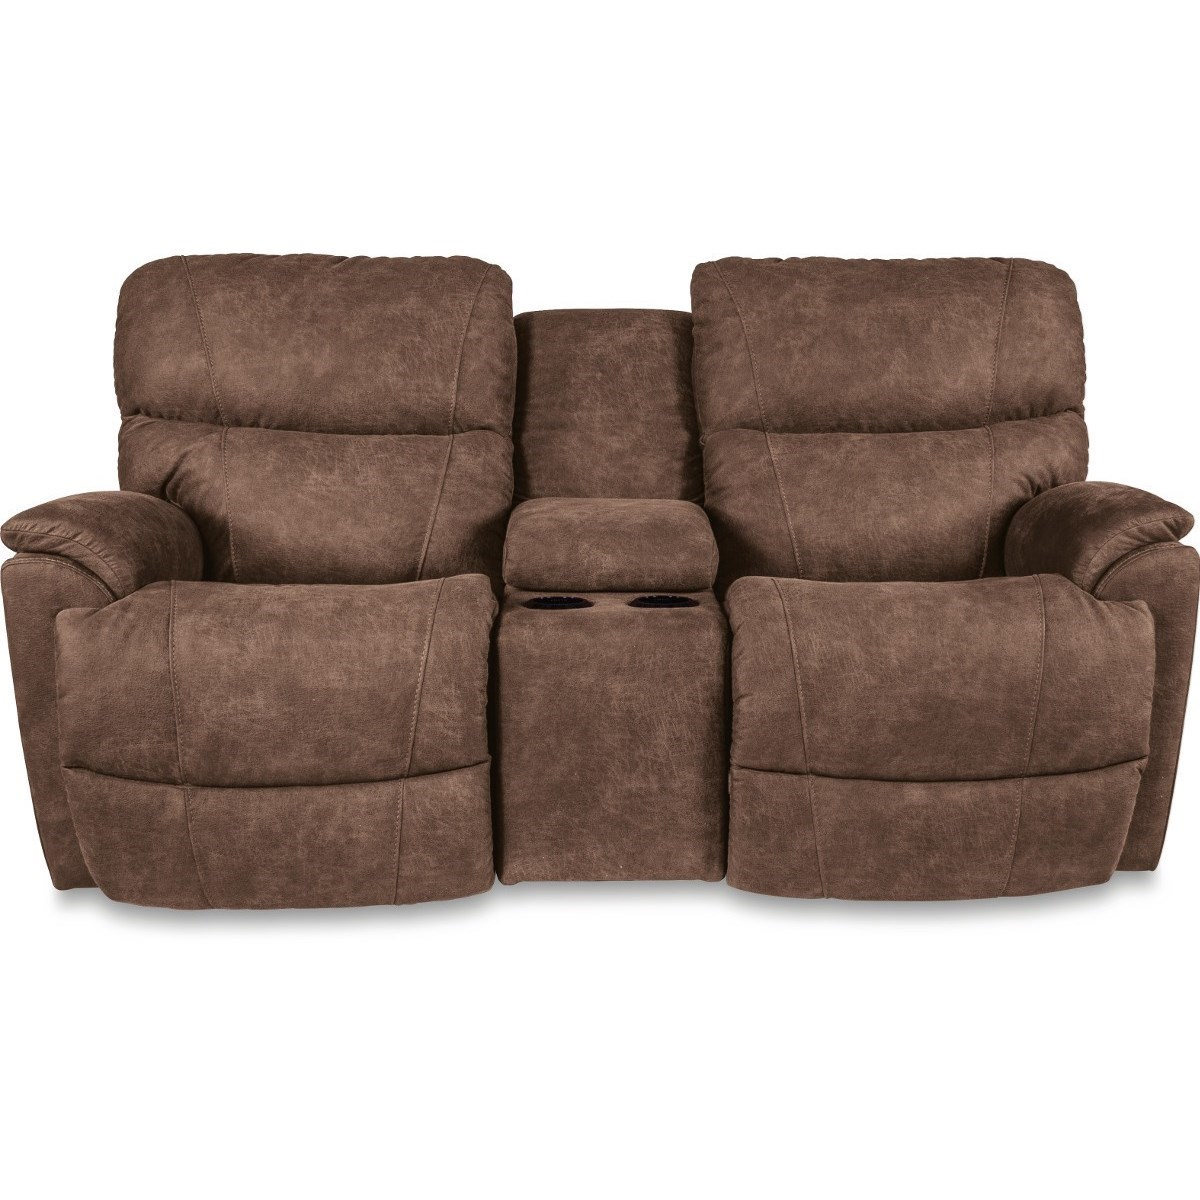 LaZBoy TrouperPower LaZTime Full Reclining Love W  Recliner With Cup Holder And Storage C93